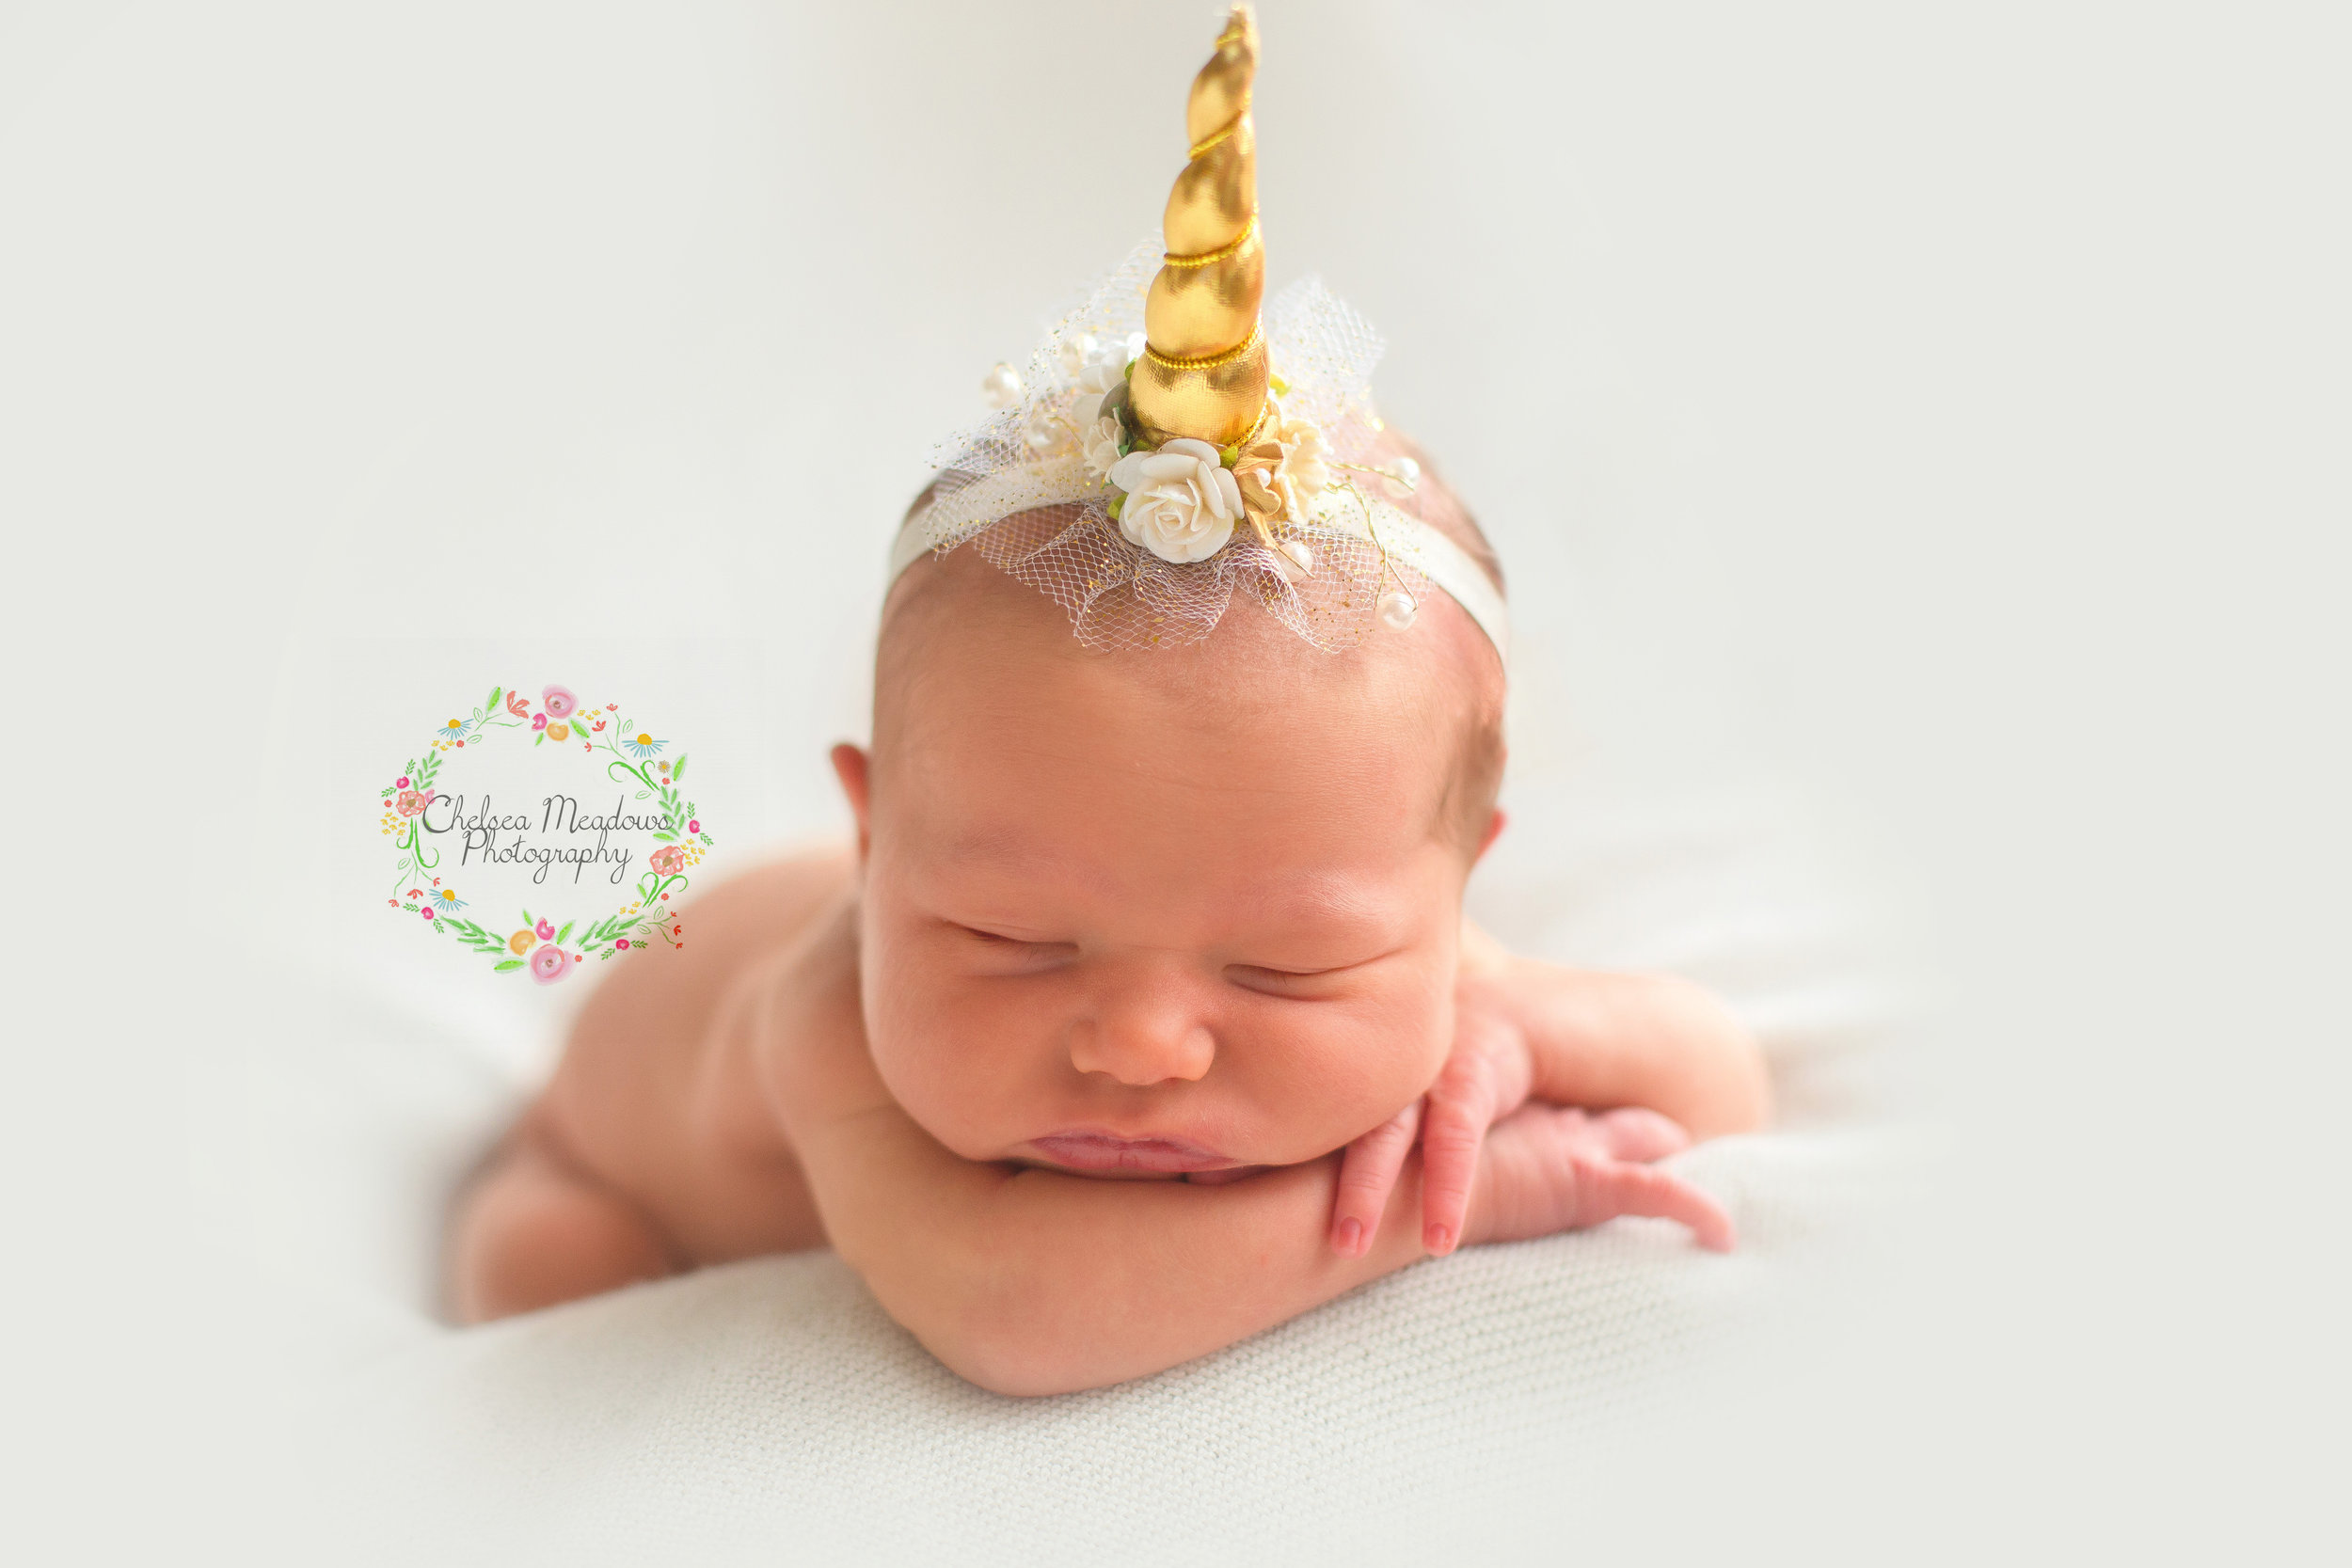 Sawyer Newborn Session - Nashville Newborn Photographer - Chelsea Meadows Photography (23).jpg